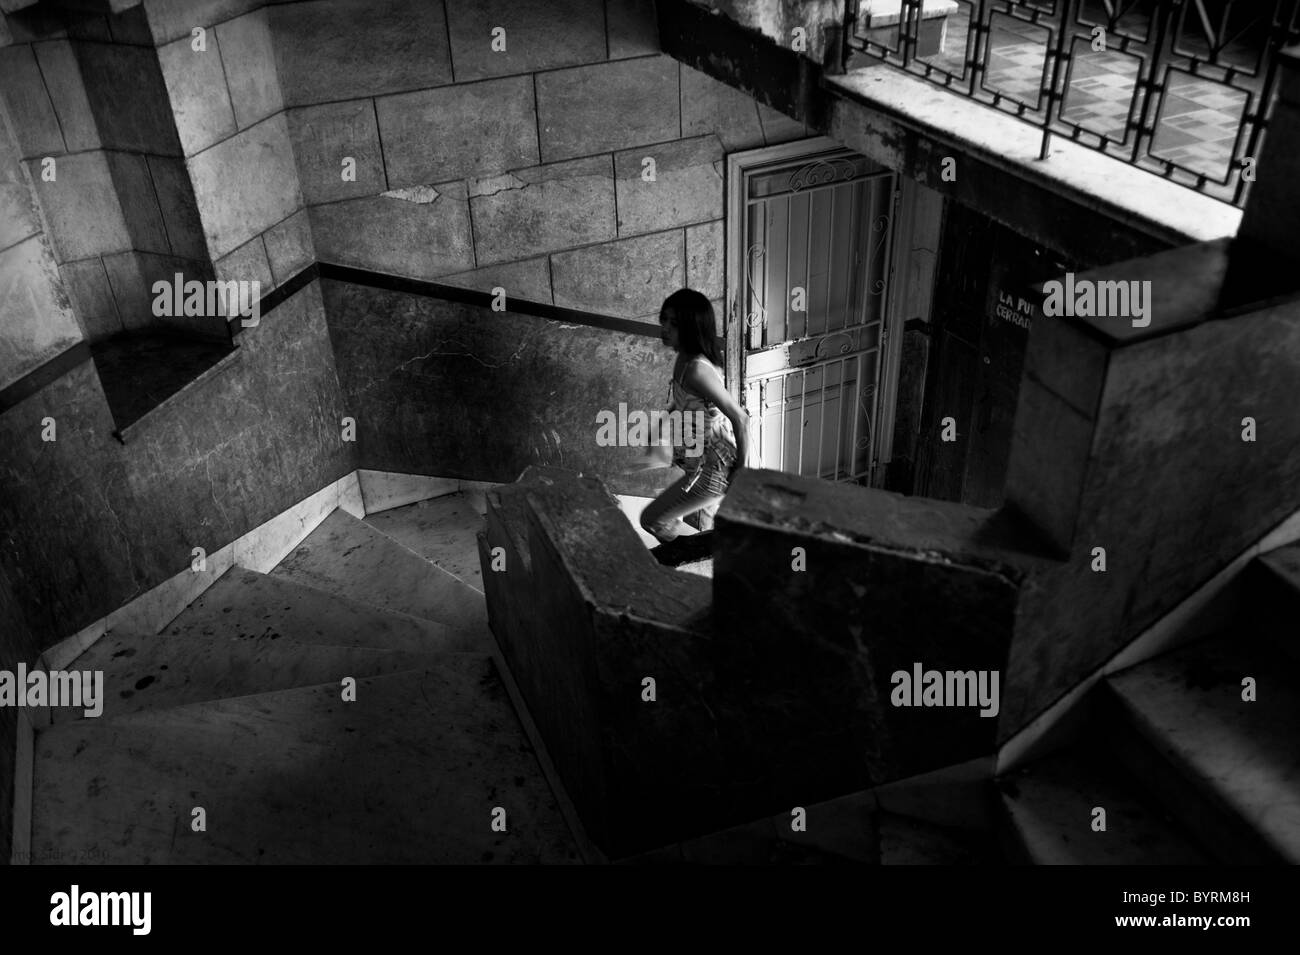 A woman claiming the stairs on an old residential house in Havana, Cuba - Stock Image